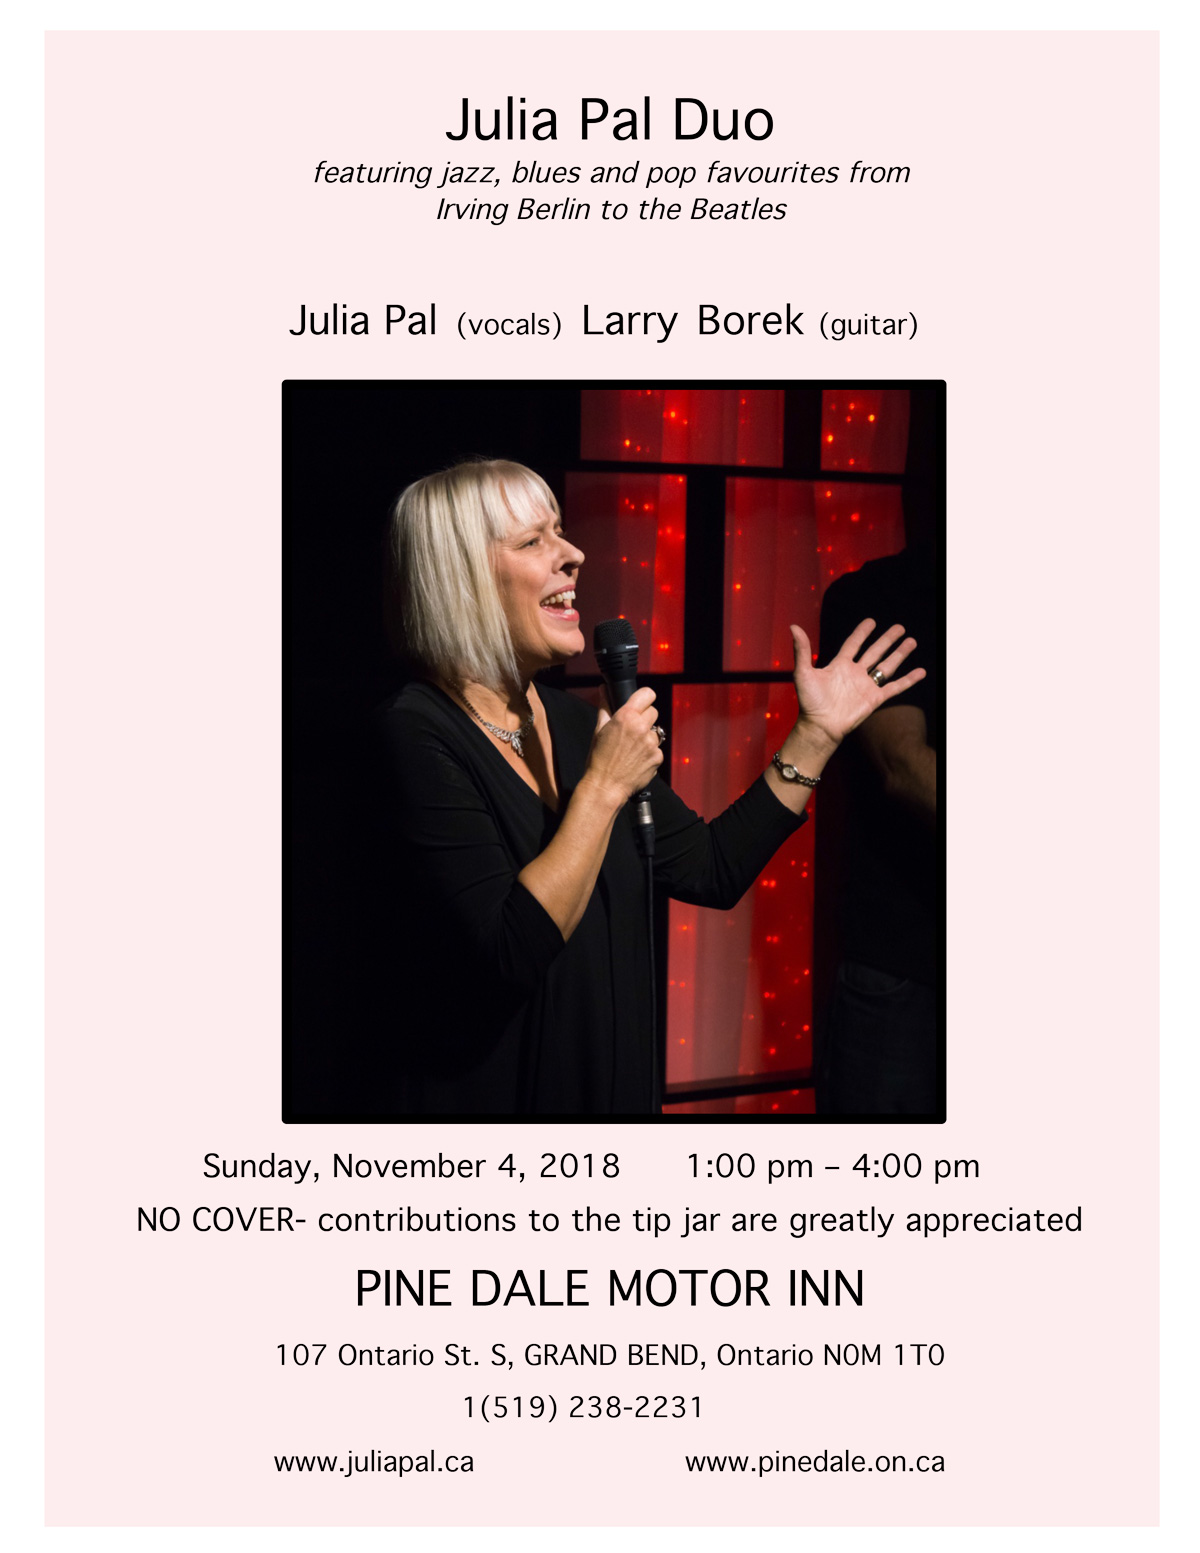 Julia Pal Duo at Pinedale Motor Inn, November 4, 2018